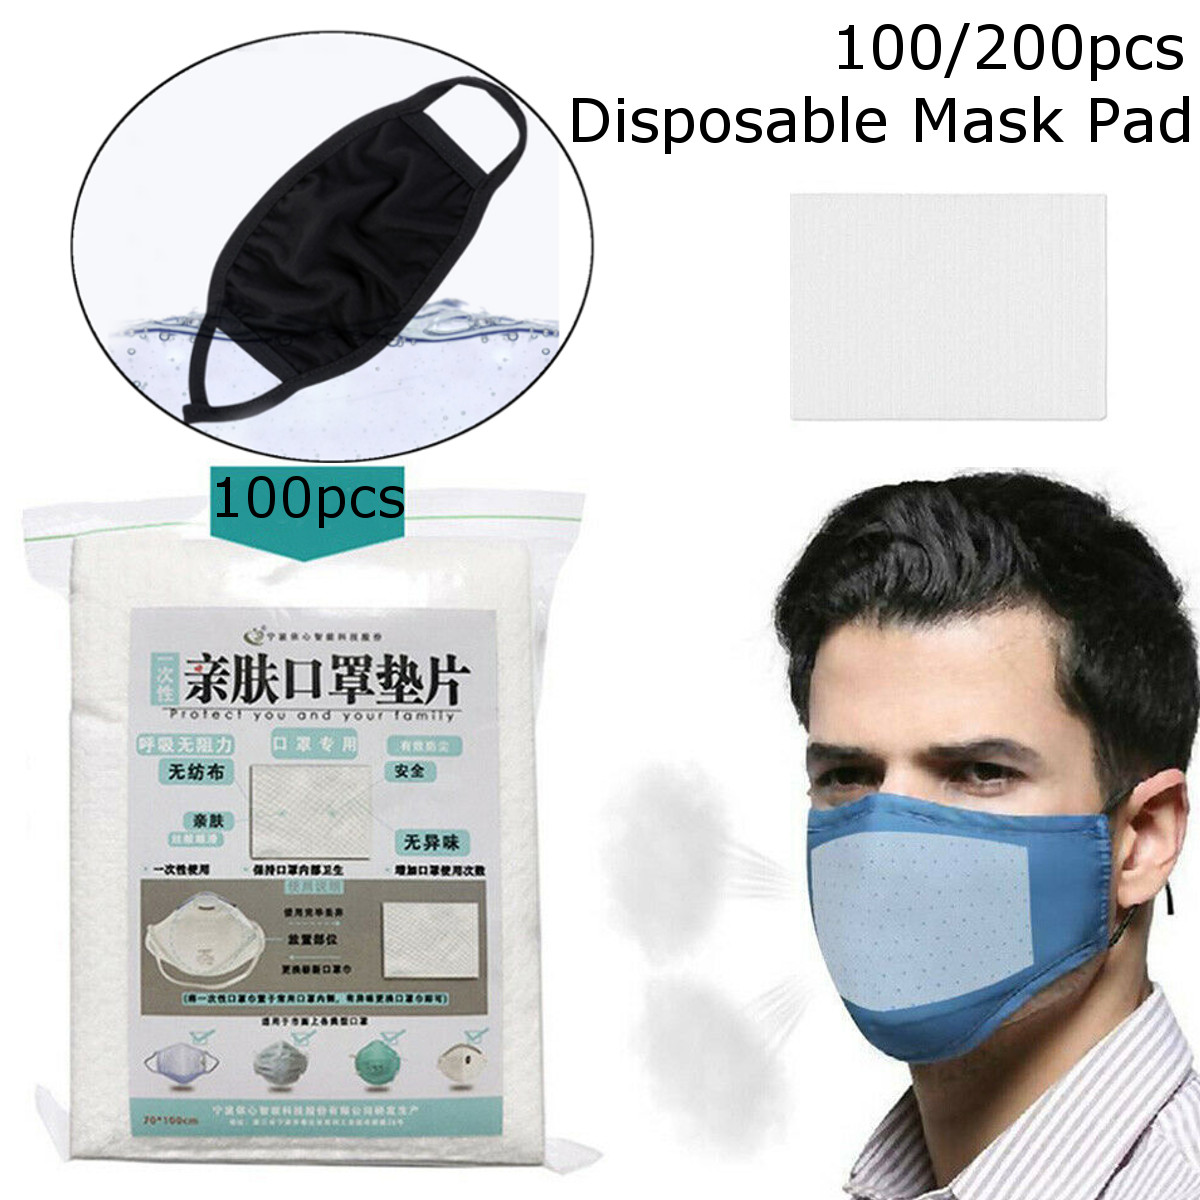 100/200pcs Disposable Filter Pad for Kids Adult Face Mask Respirator Dustproof Anti PM2.5 fit for N95 KN95 KF94 ffp3 2 1 Masks